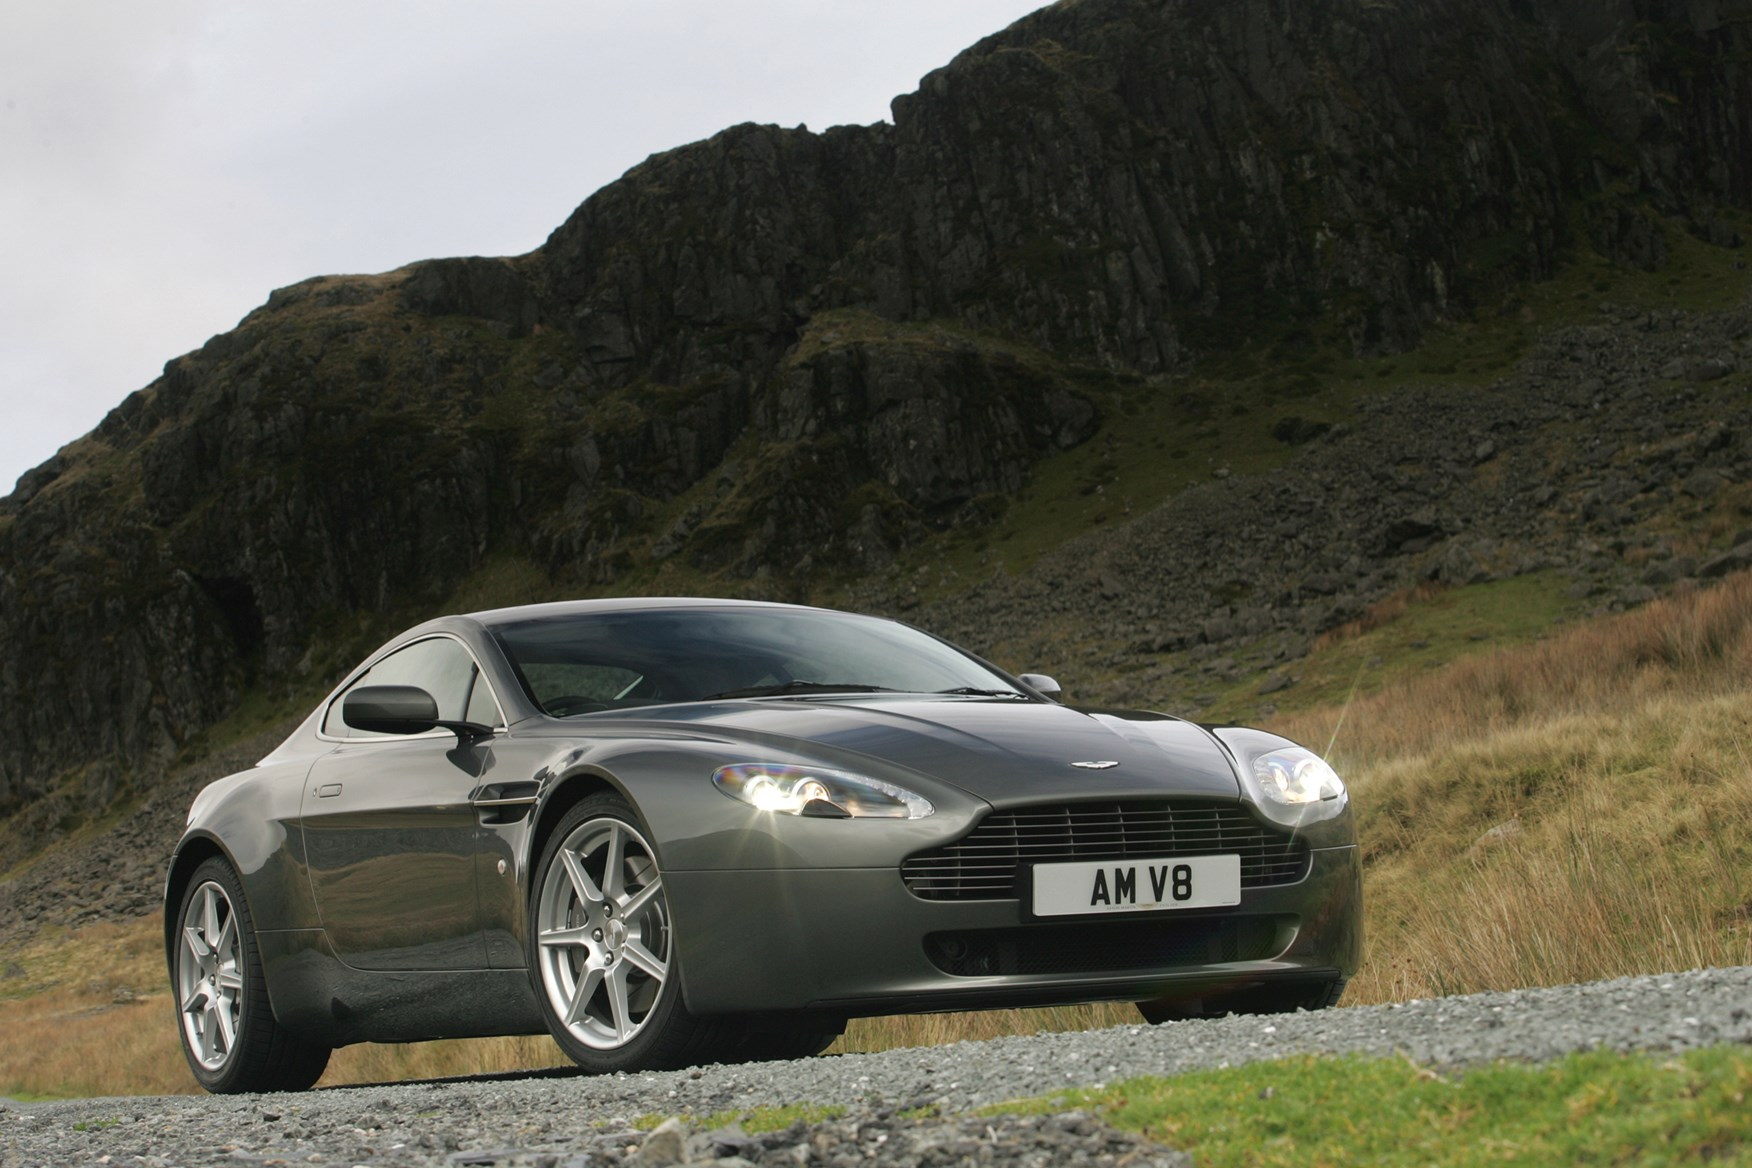 aston martin vantage coupe review 2005 parkers. Black Bedroom Furniture Sets. Home Design Ideas